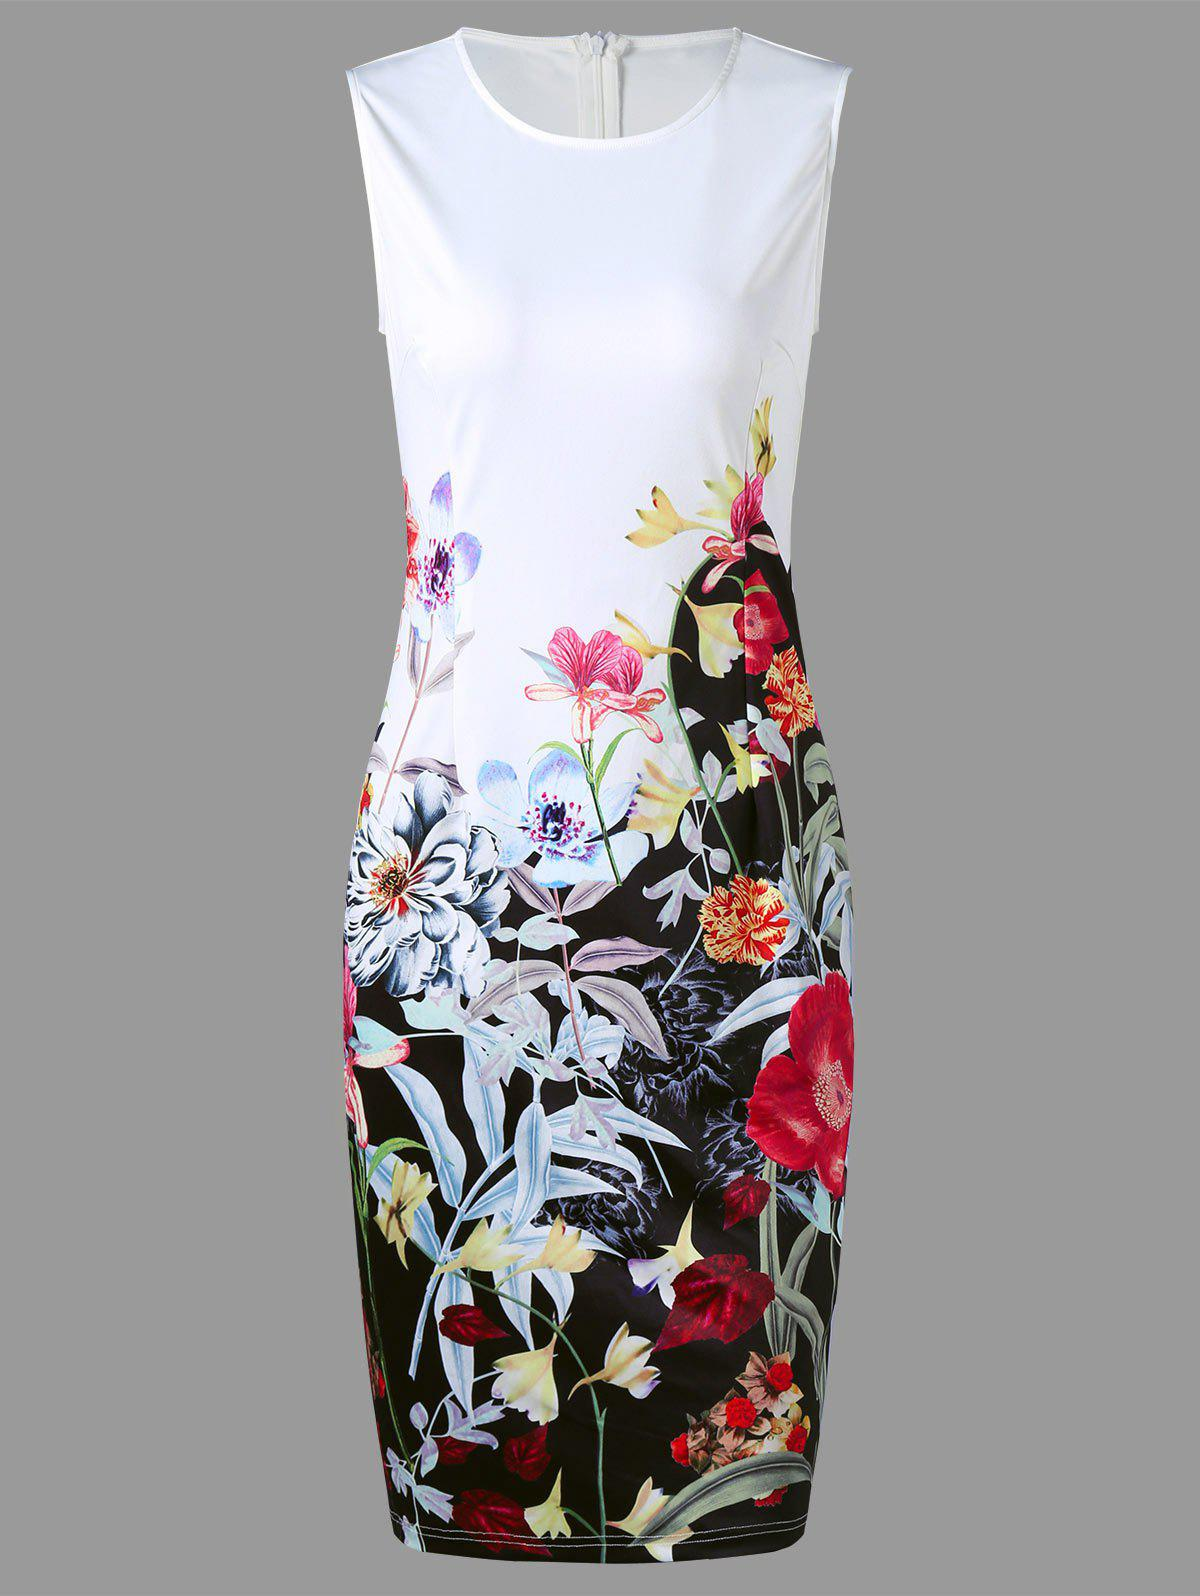 Affordable Flower Print Sleeveless Pencil Sheath Dress 7b4d2b96b